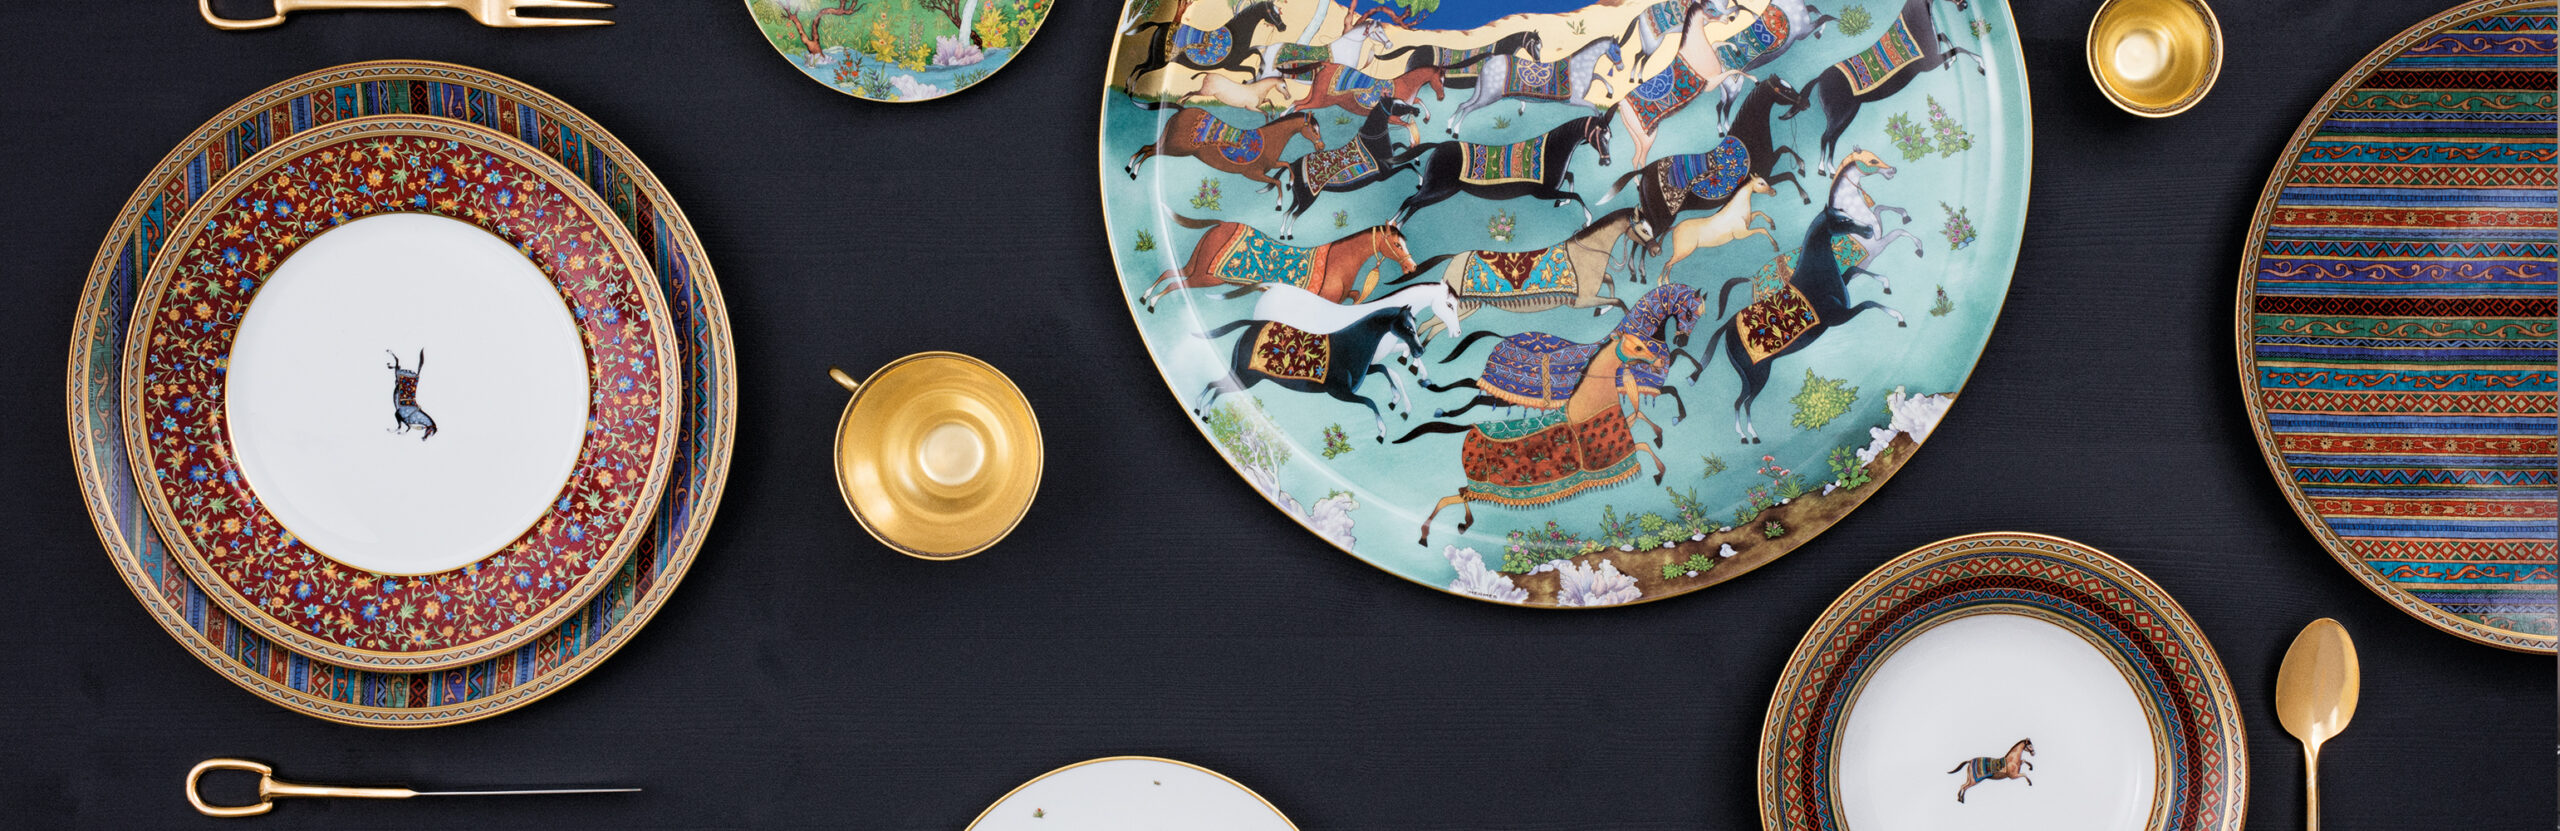 Create family traditions with Hermès porcelain